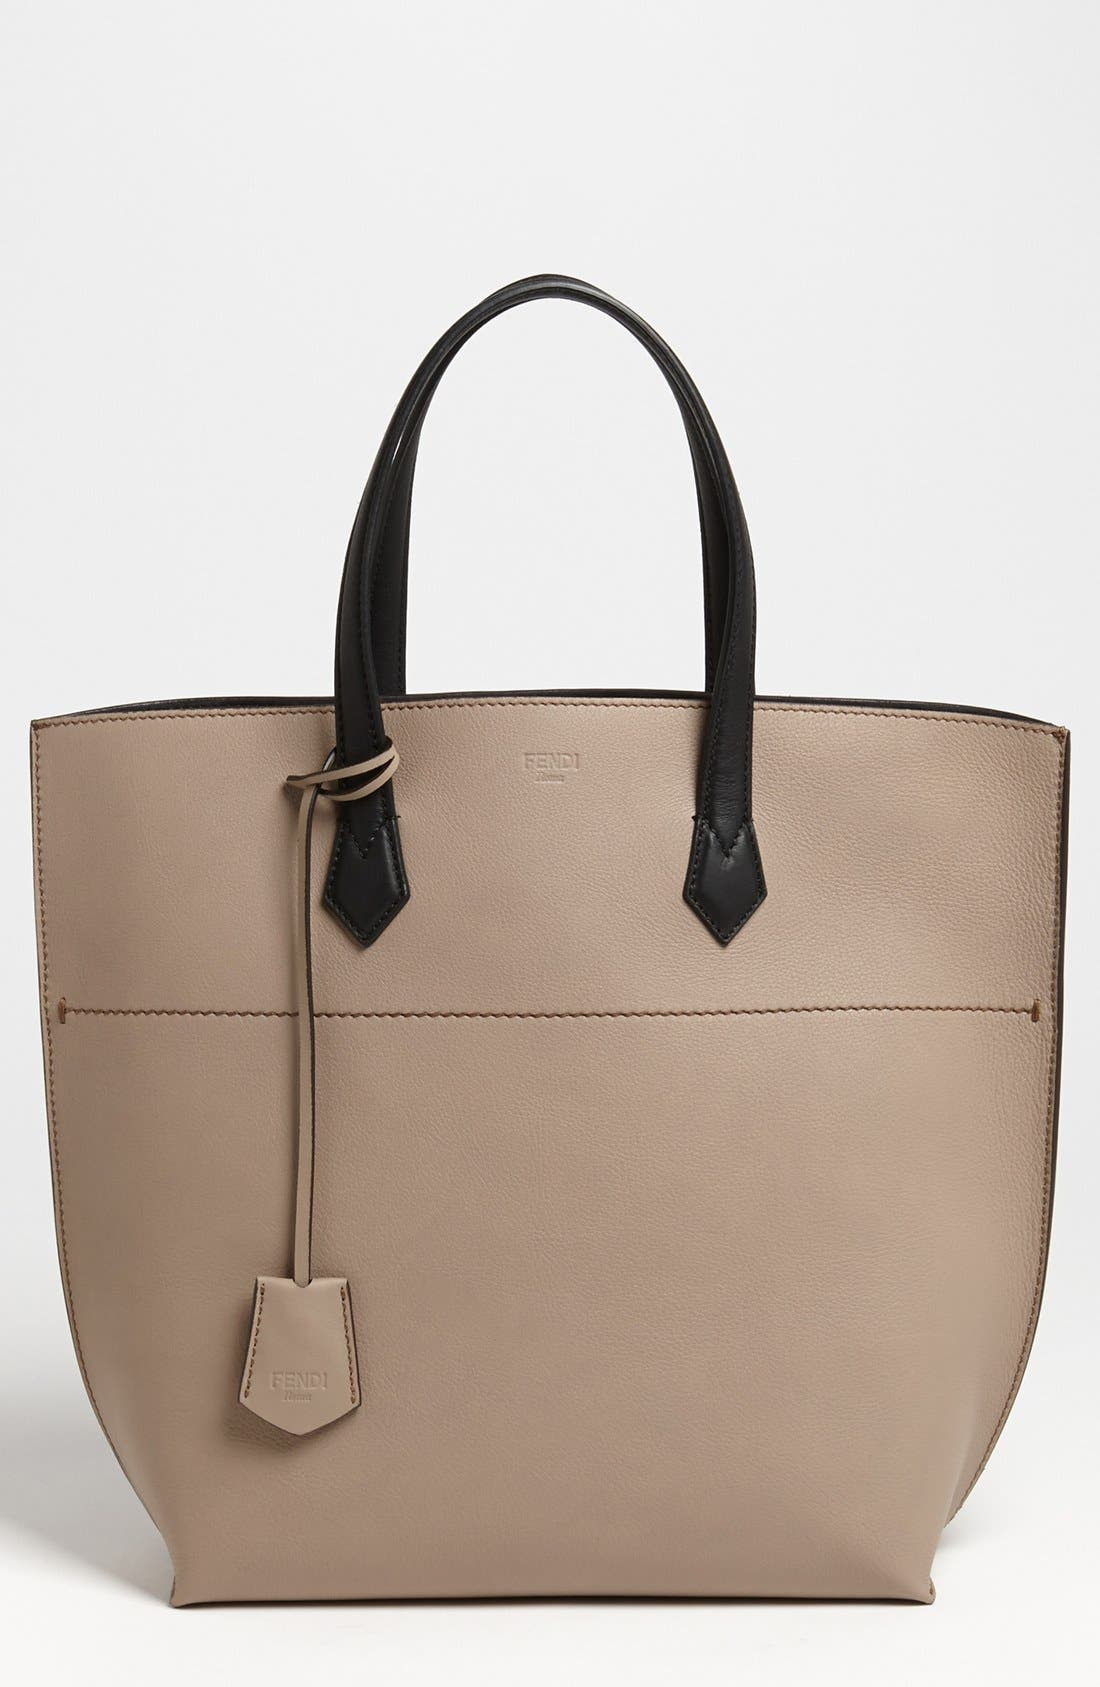 Main Image - Fendi 'All In' Leather Shopper